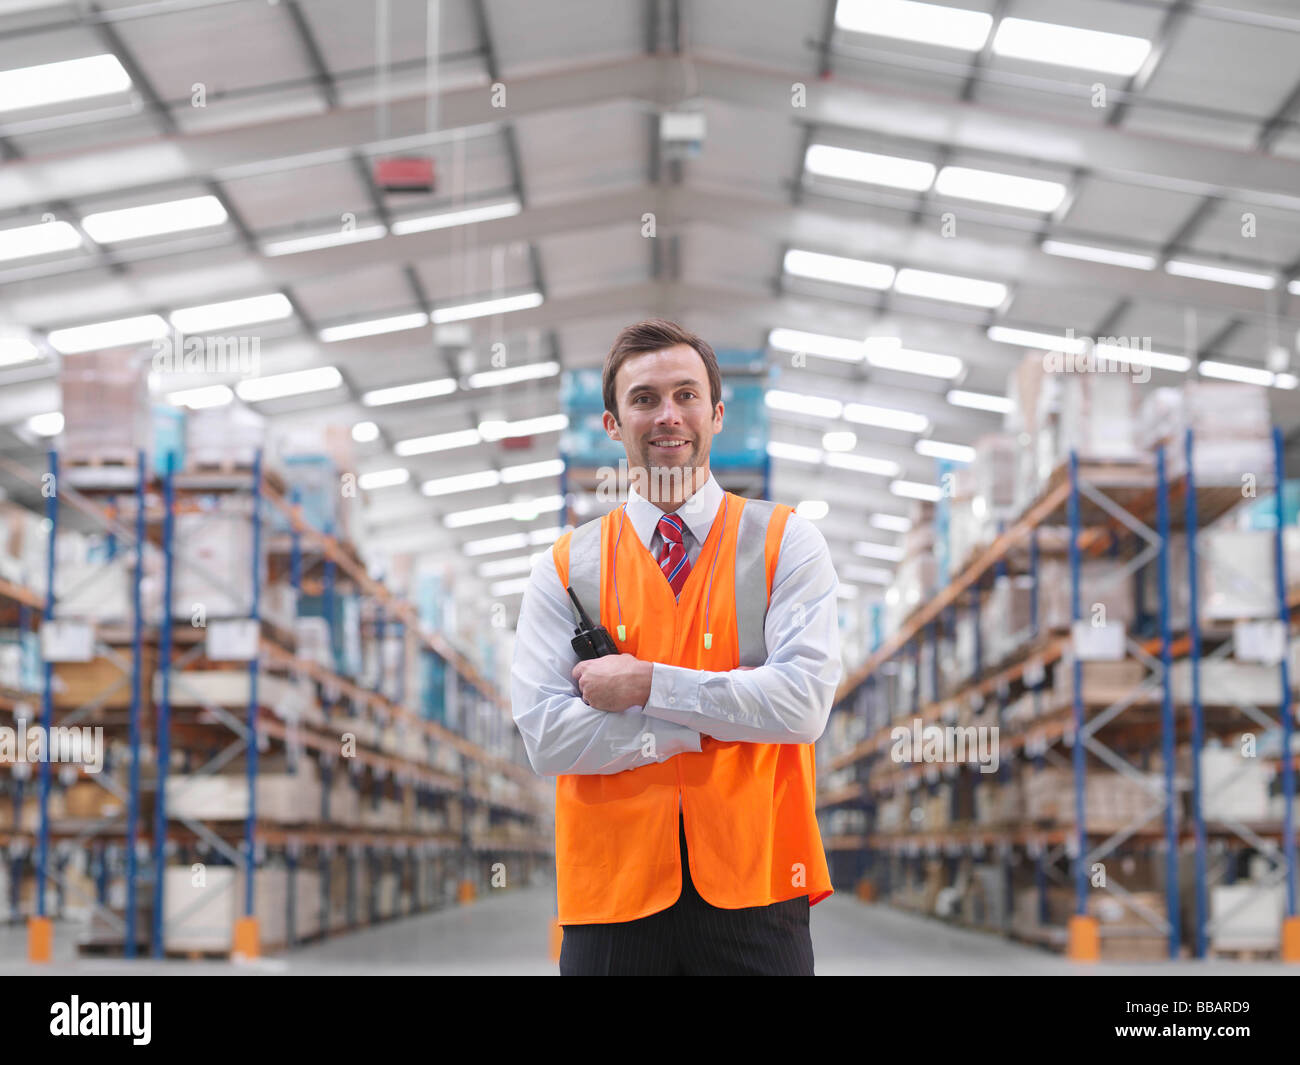 Warehouse Manager With Walkie Talkie - Stock Image